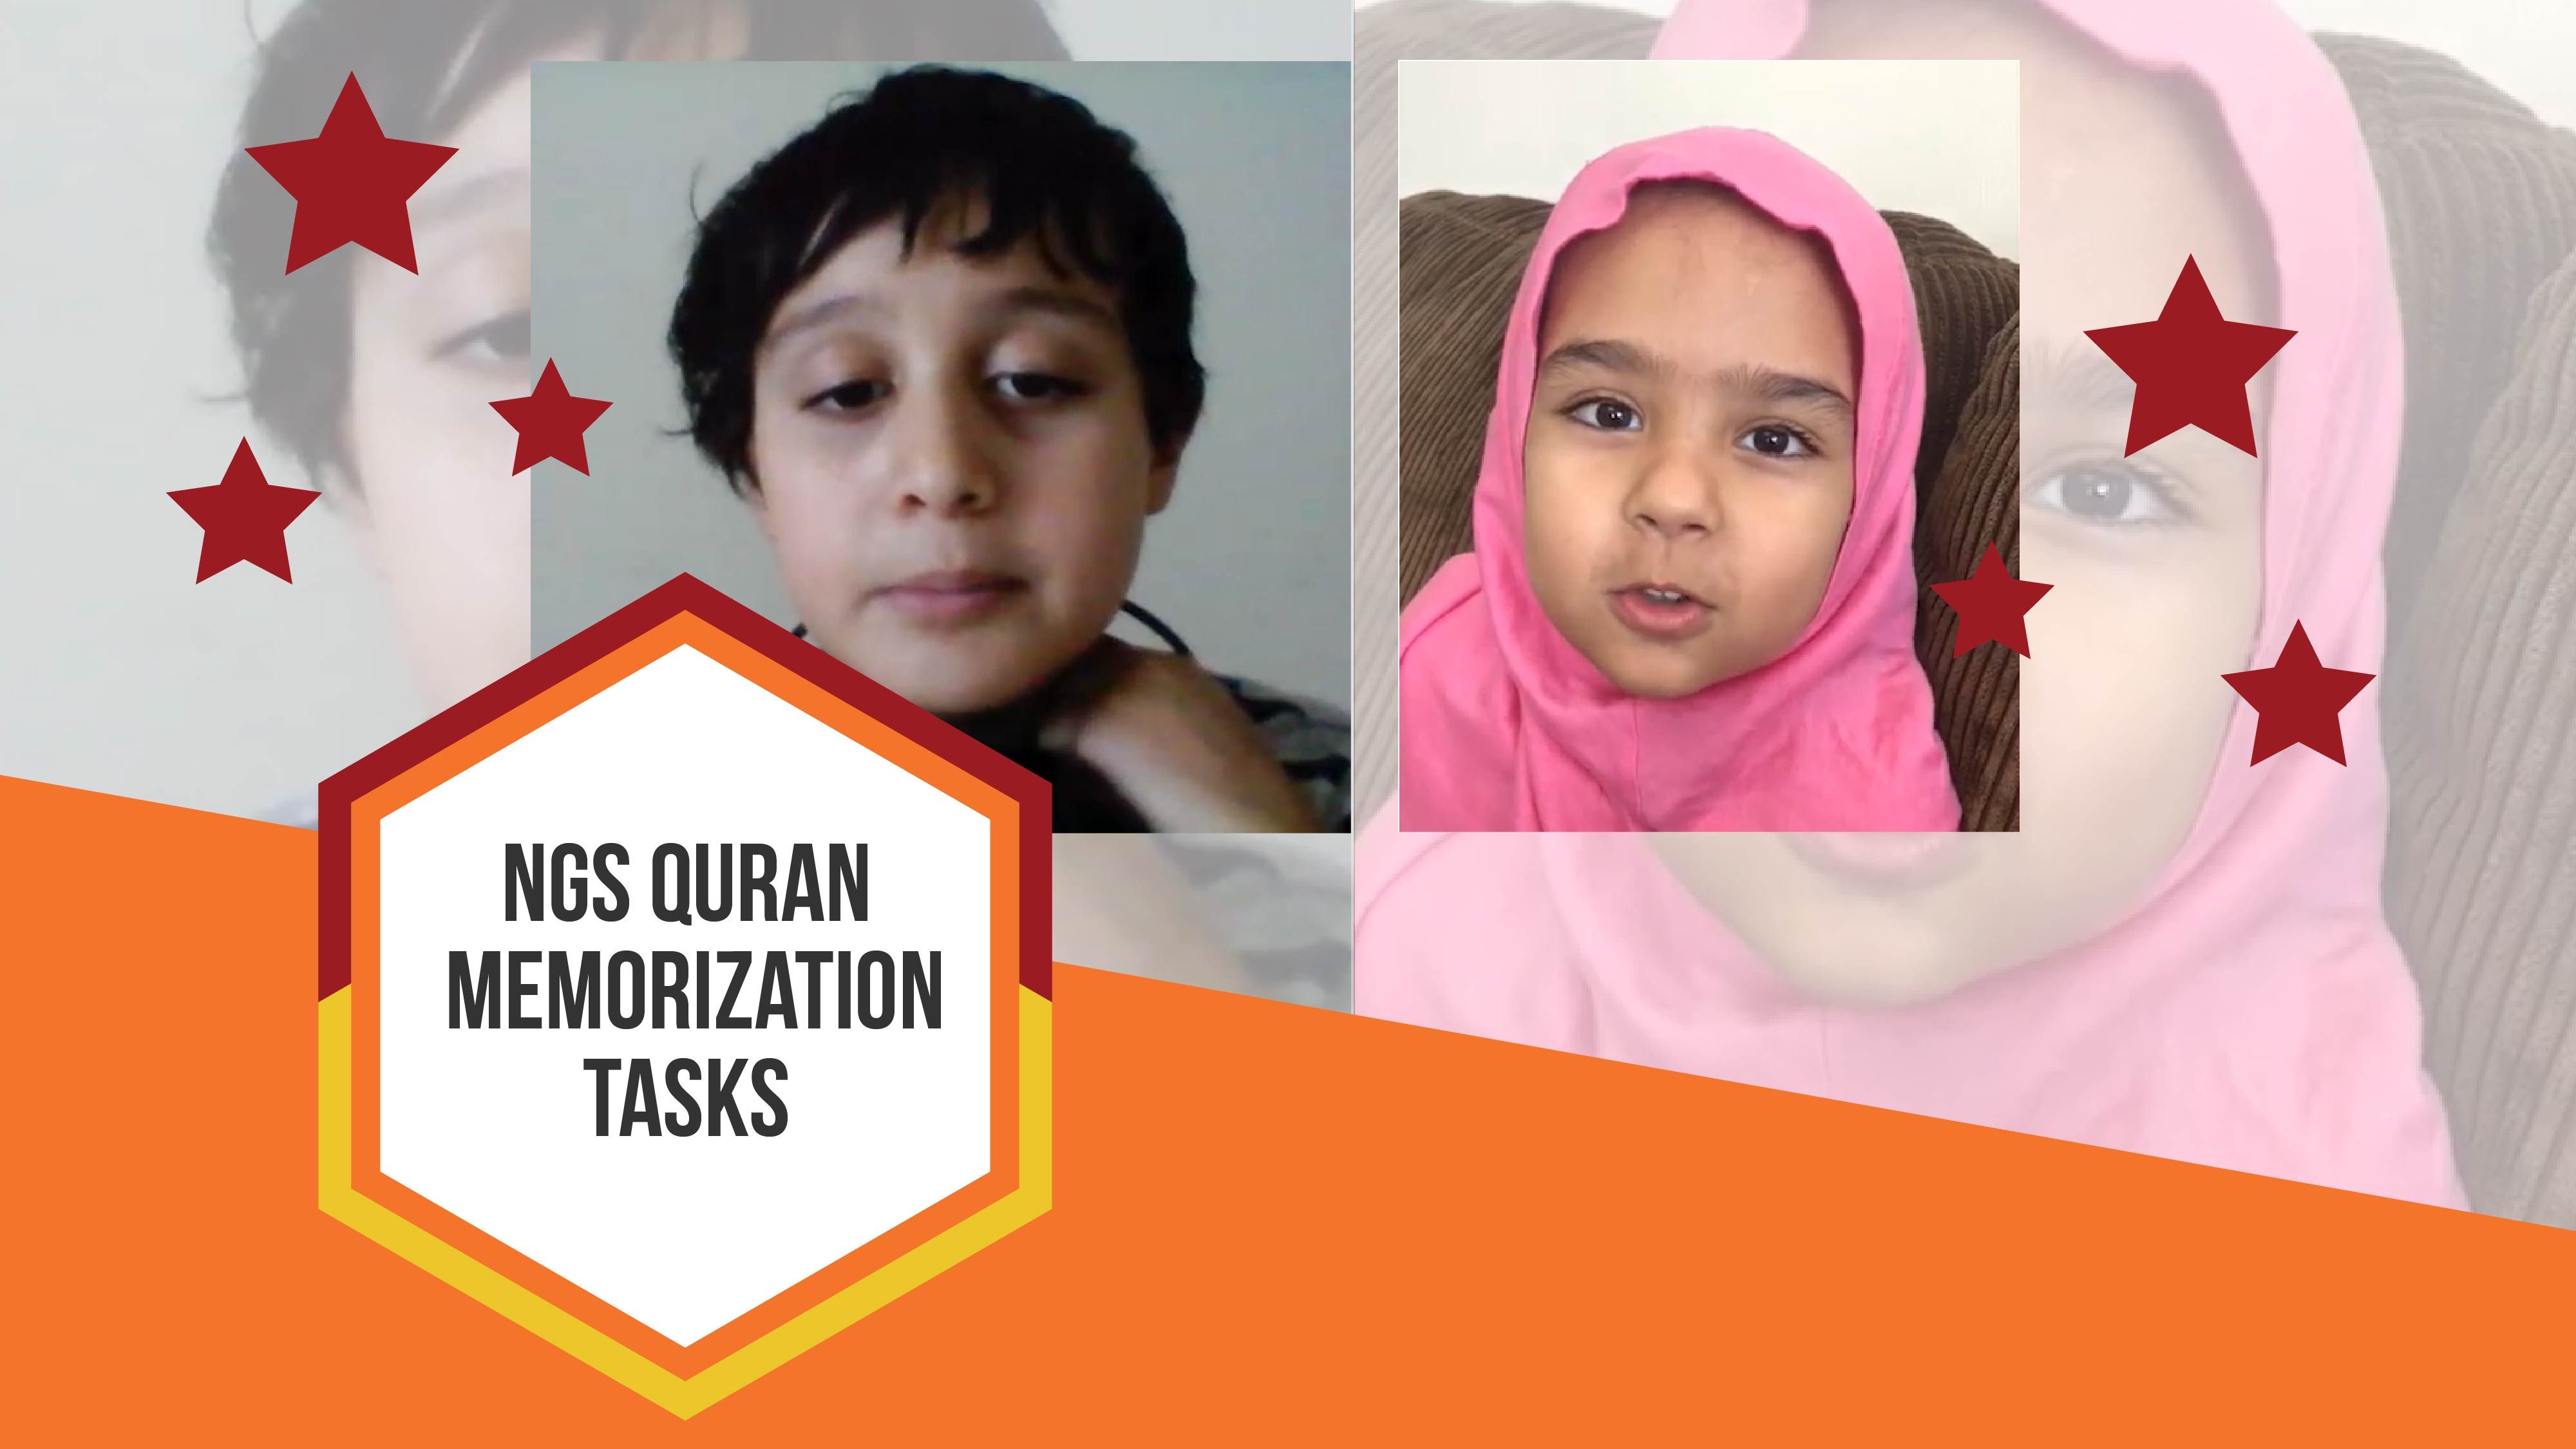 NGS Quran Stars Continue to Submit their Memorization Tasks